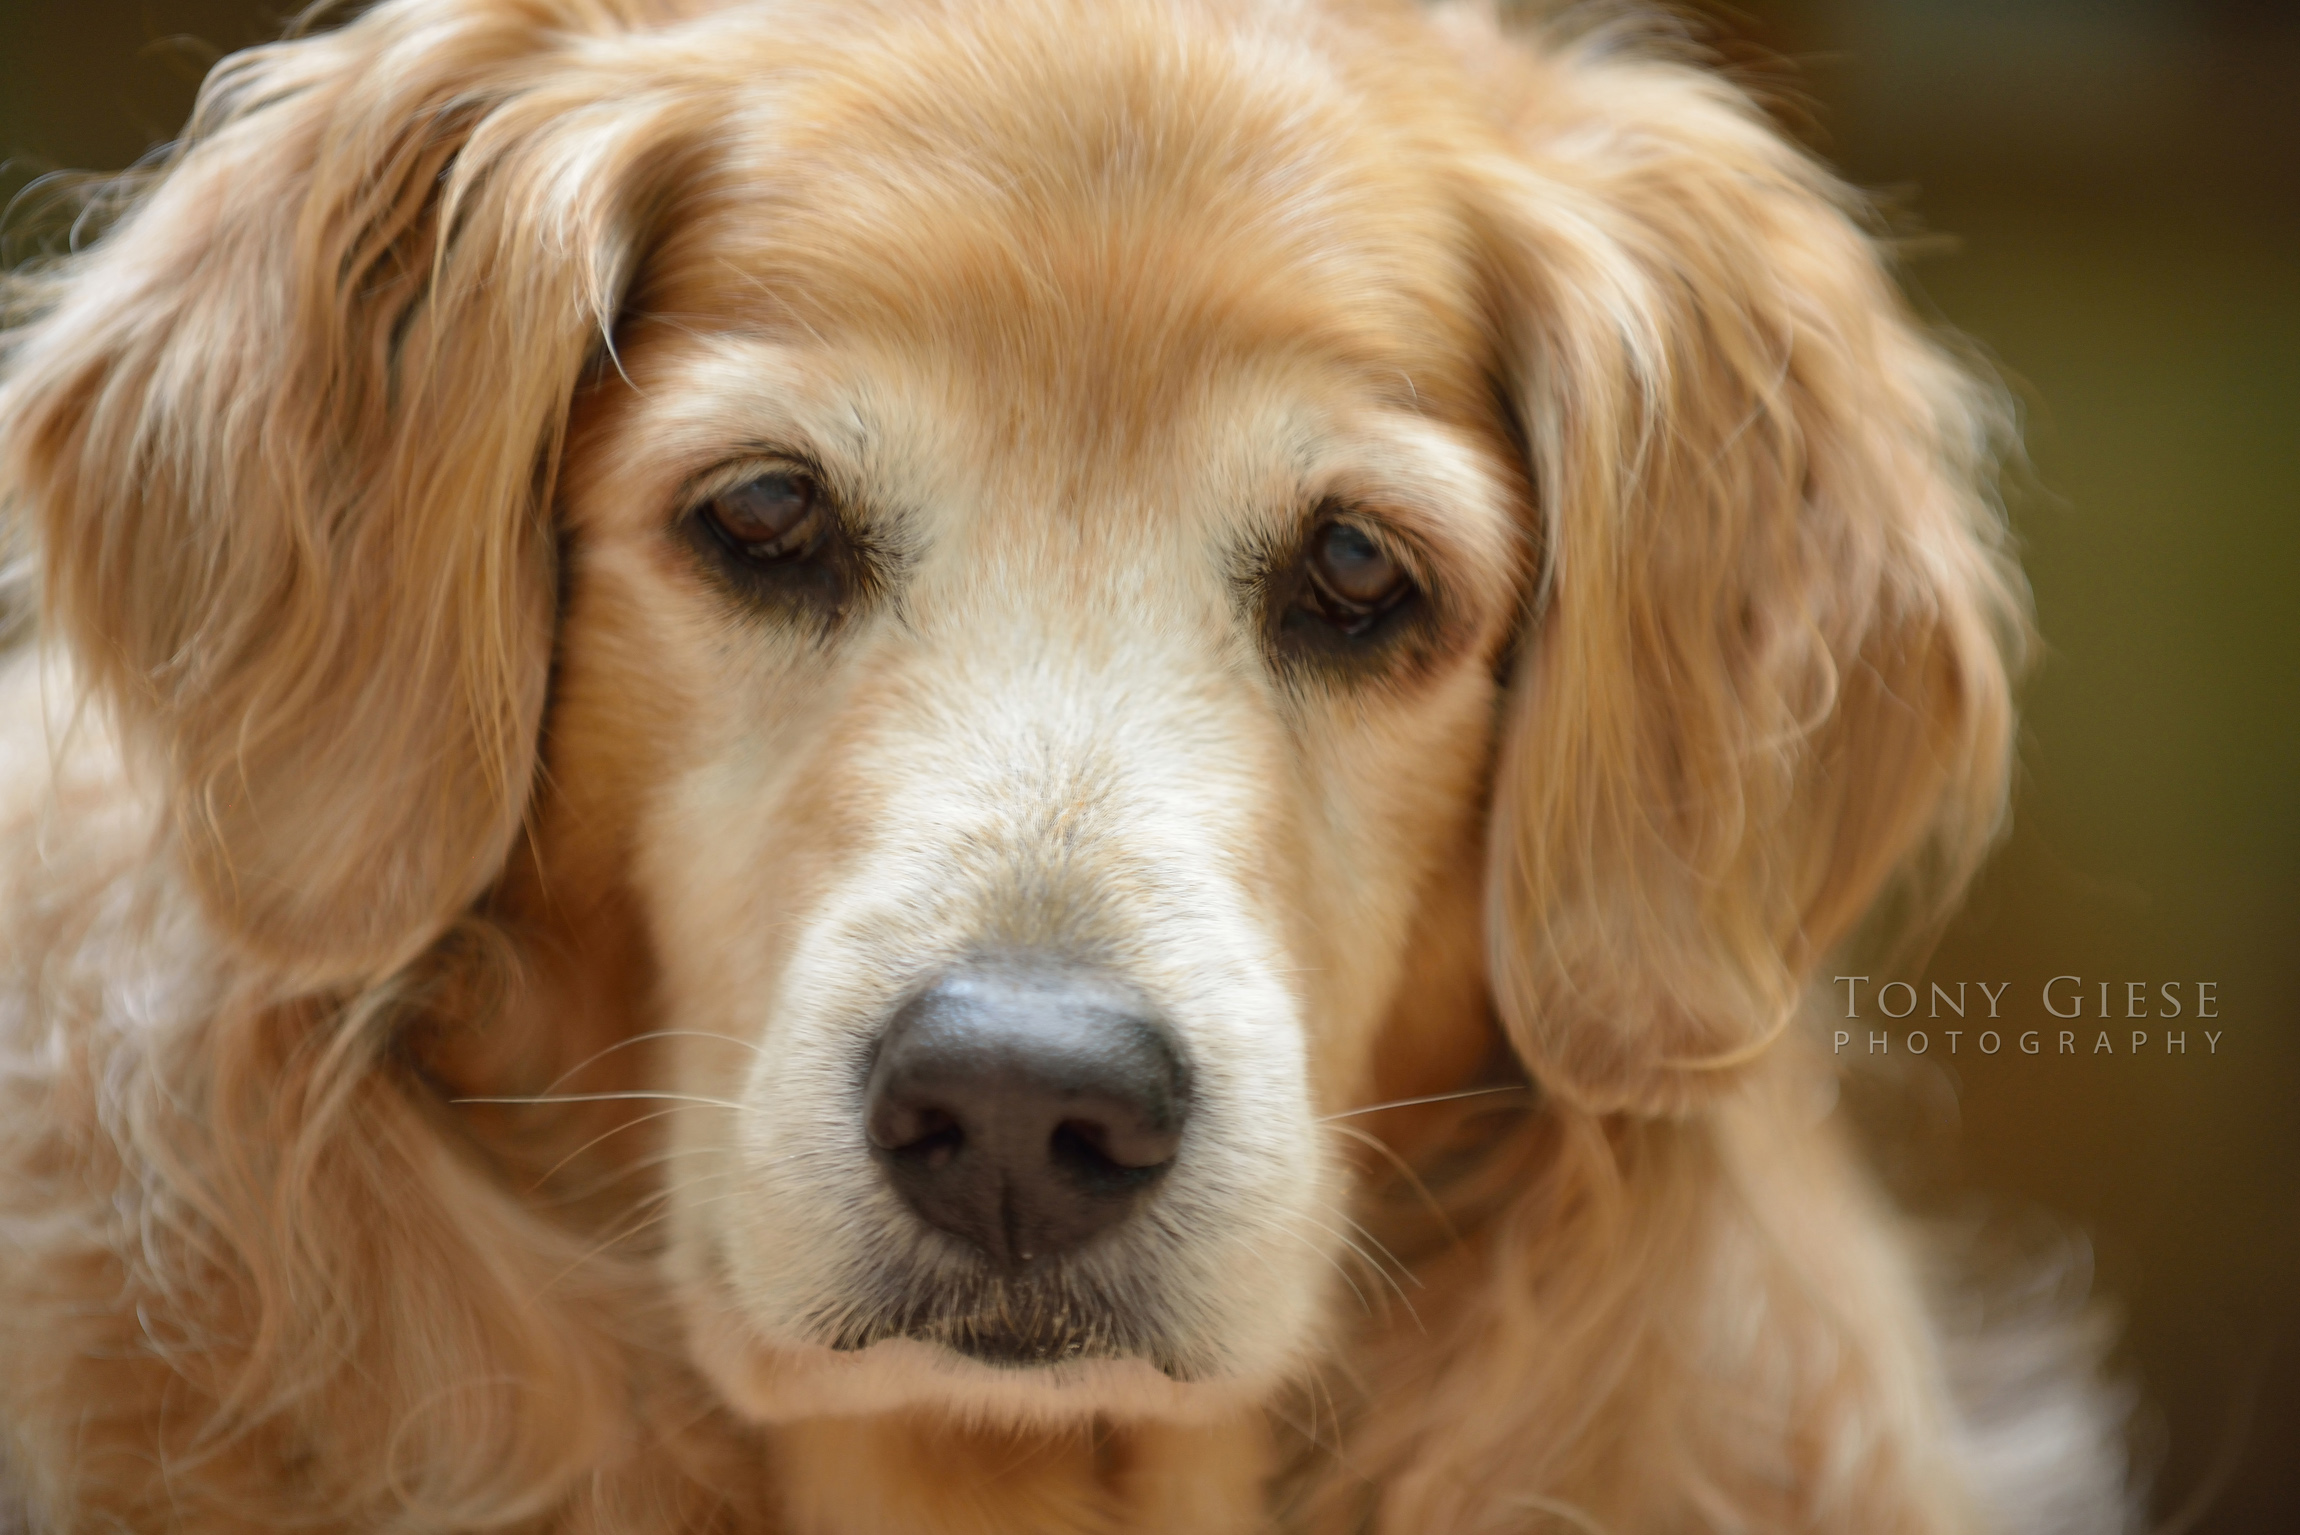 Love face of older Golden Retriever.